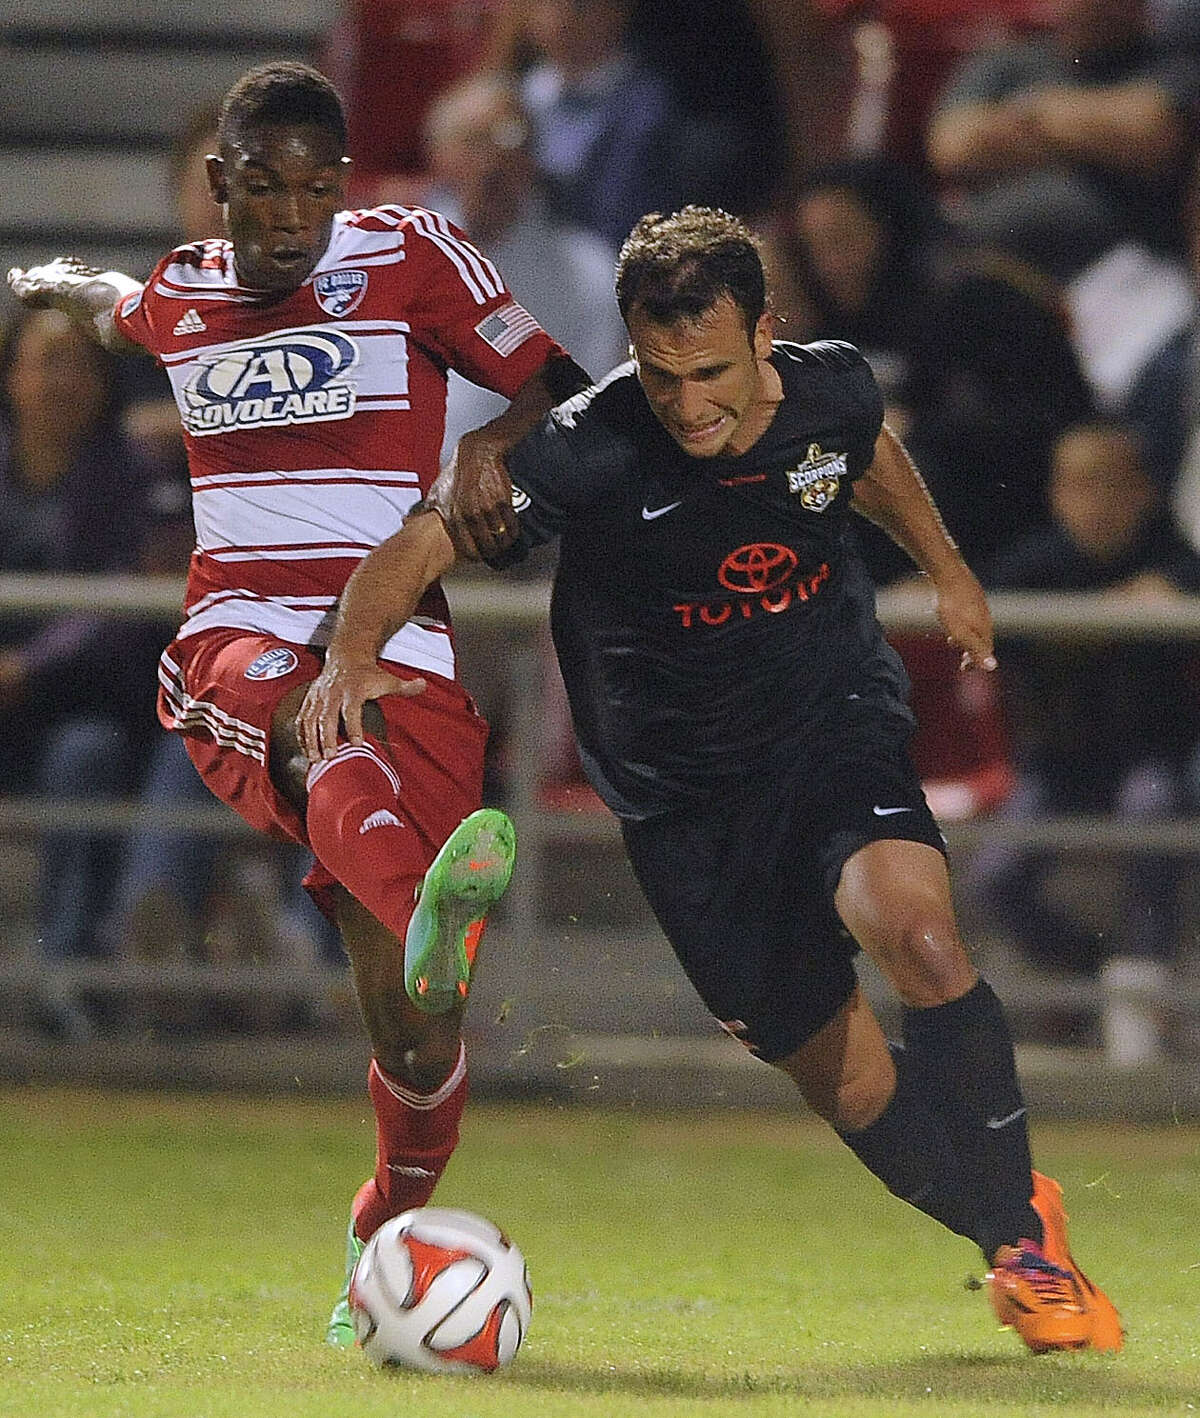 Fabian Castillo of FC Dallas, left, attempts to kick the ball as Julio Garcia of the San Antonio Scorpions gives chase during a soccer friendly at Toyota Field Saturday, March 1, 2014.